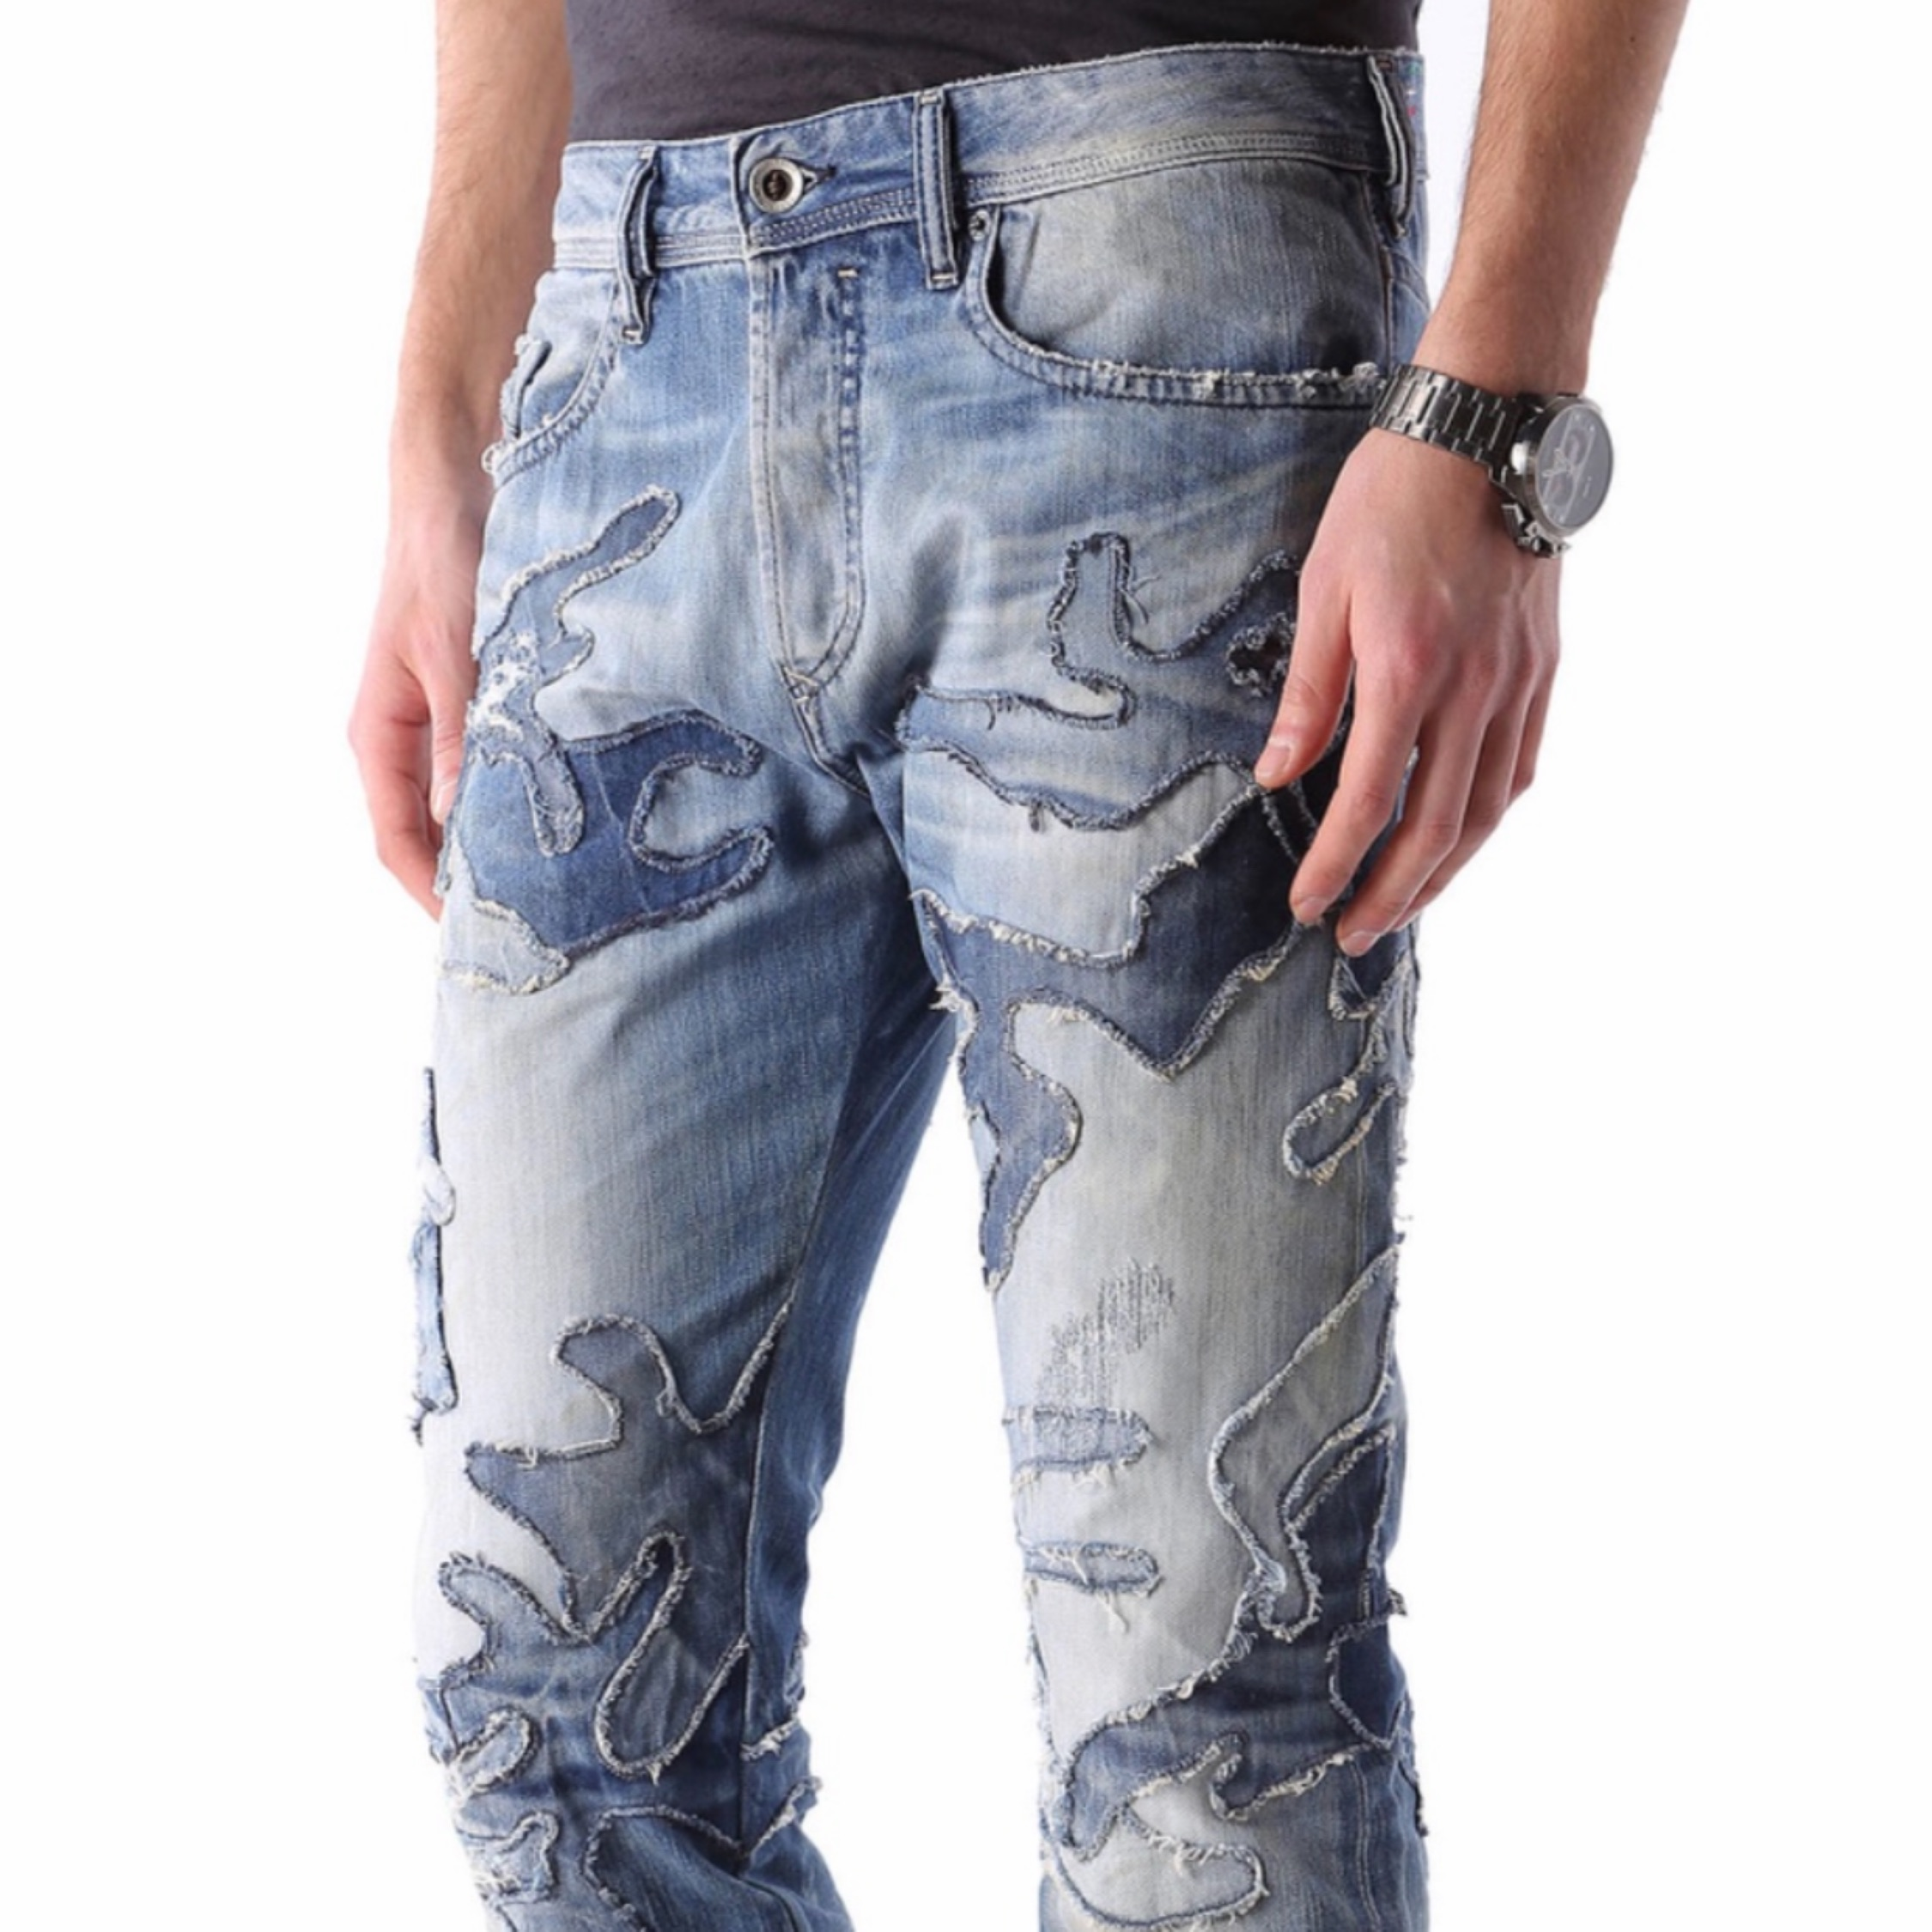 competitive price 6cd5a 21a32 Limited Edition Men's Jeans By Diesel Atelier 1200